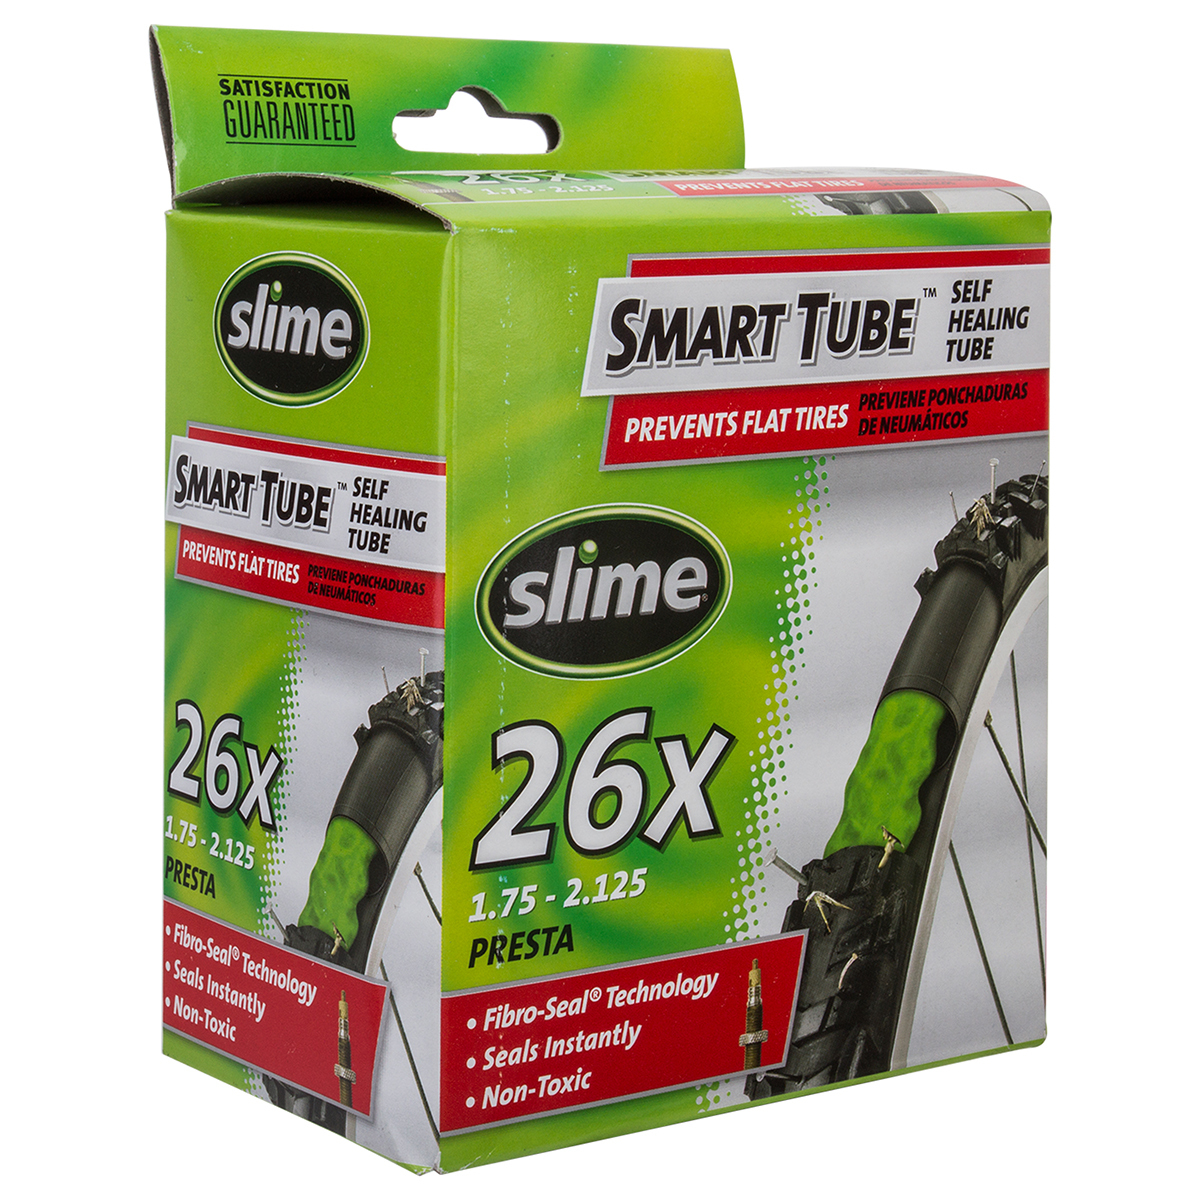 Slime 26 x 1.75-2.125 34mm Presta Self-Sealing tube